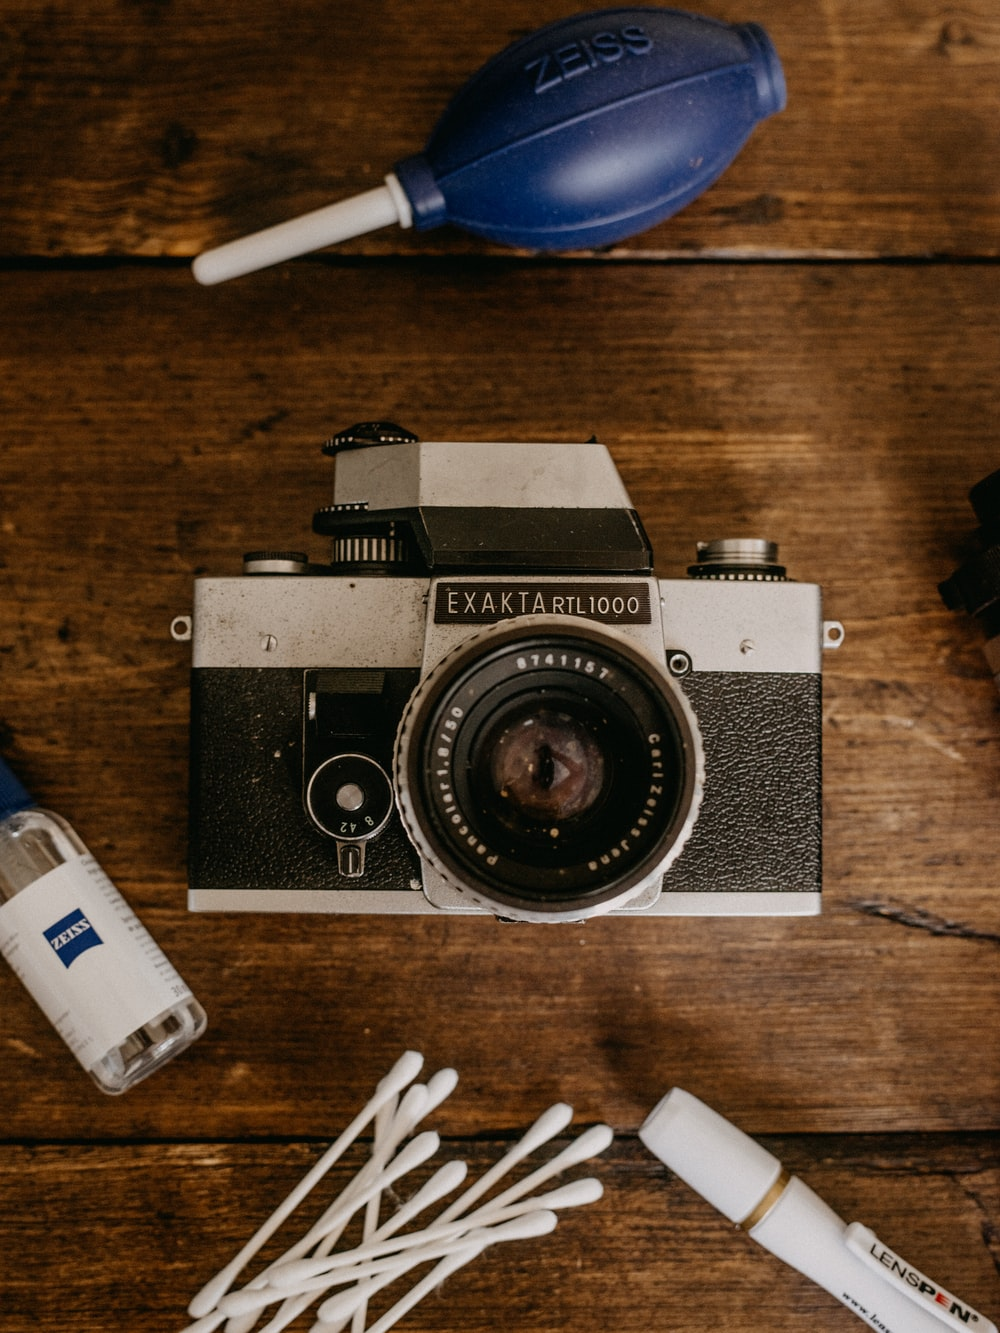 black and silver pentax camera on brown wooden table